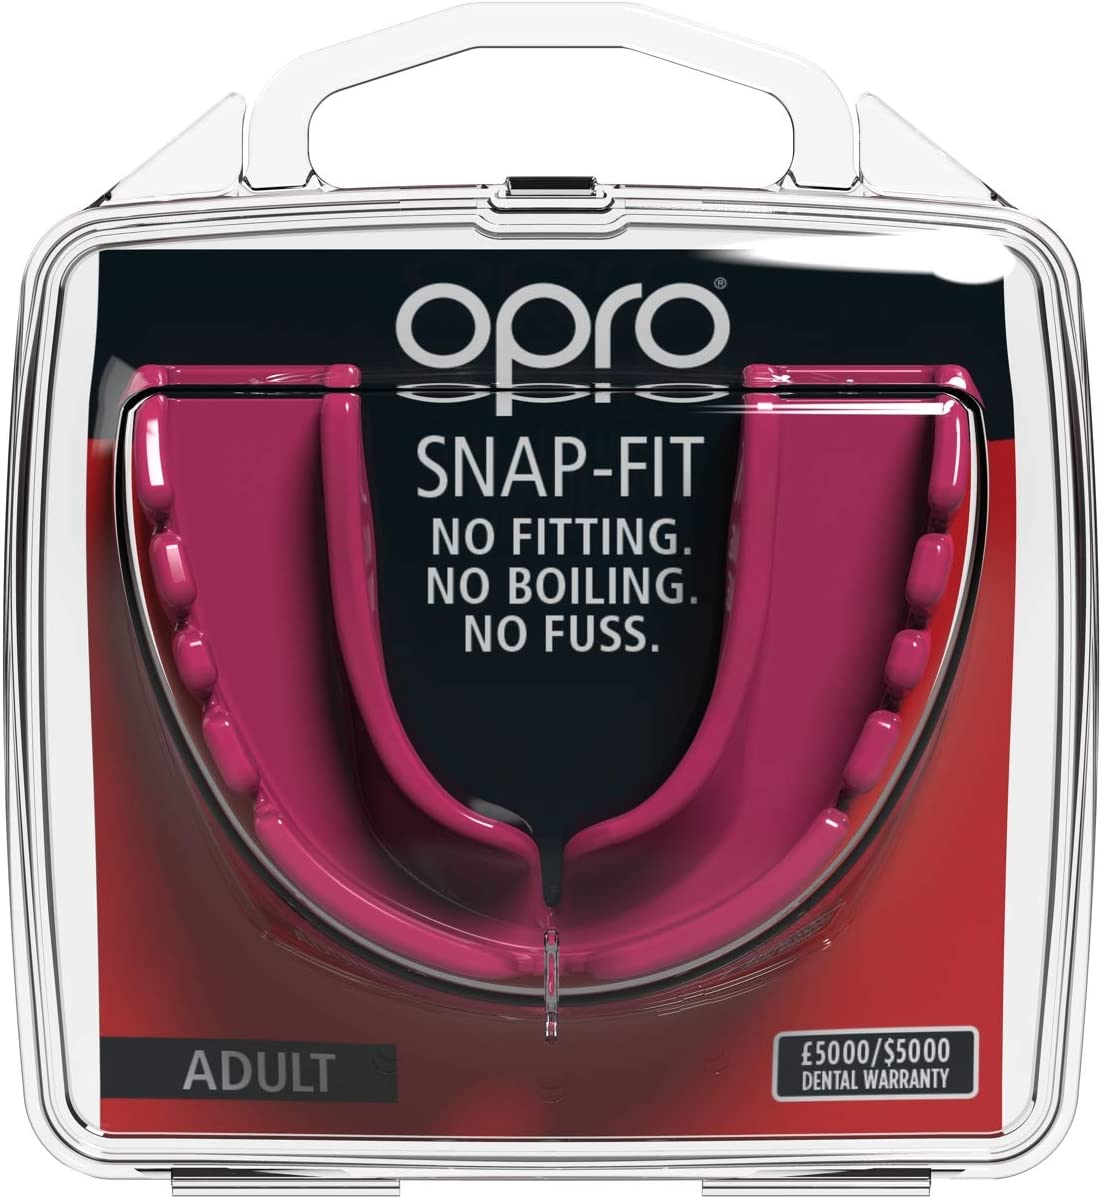 OPRO Snap-Fit Mouthguard and Other Contact Sports Adult and Youth Sizes No Boiling or Fitting Required -18 Month Dental Warranty Gum Shield for Hockey Rugby